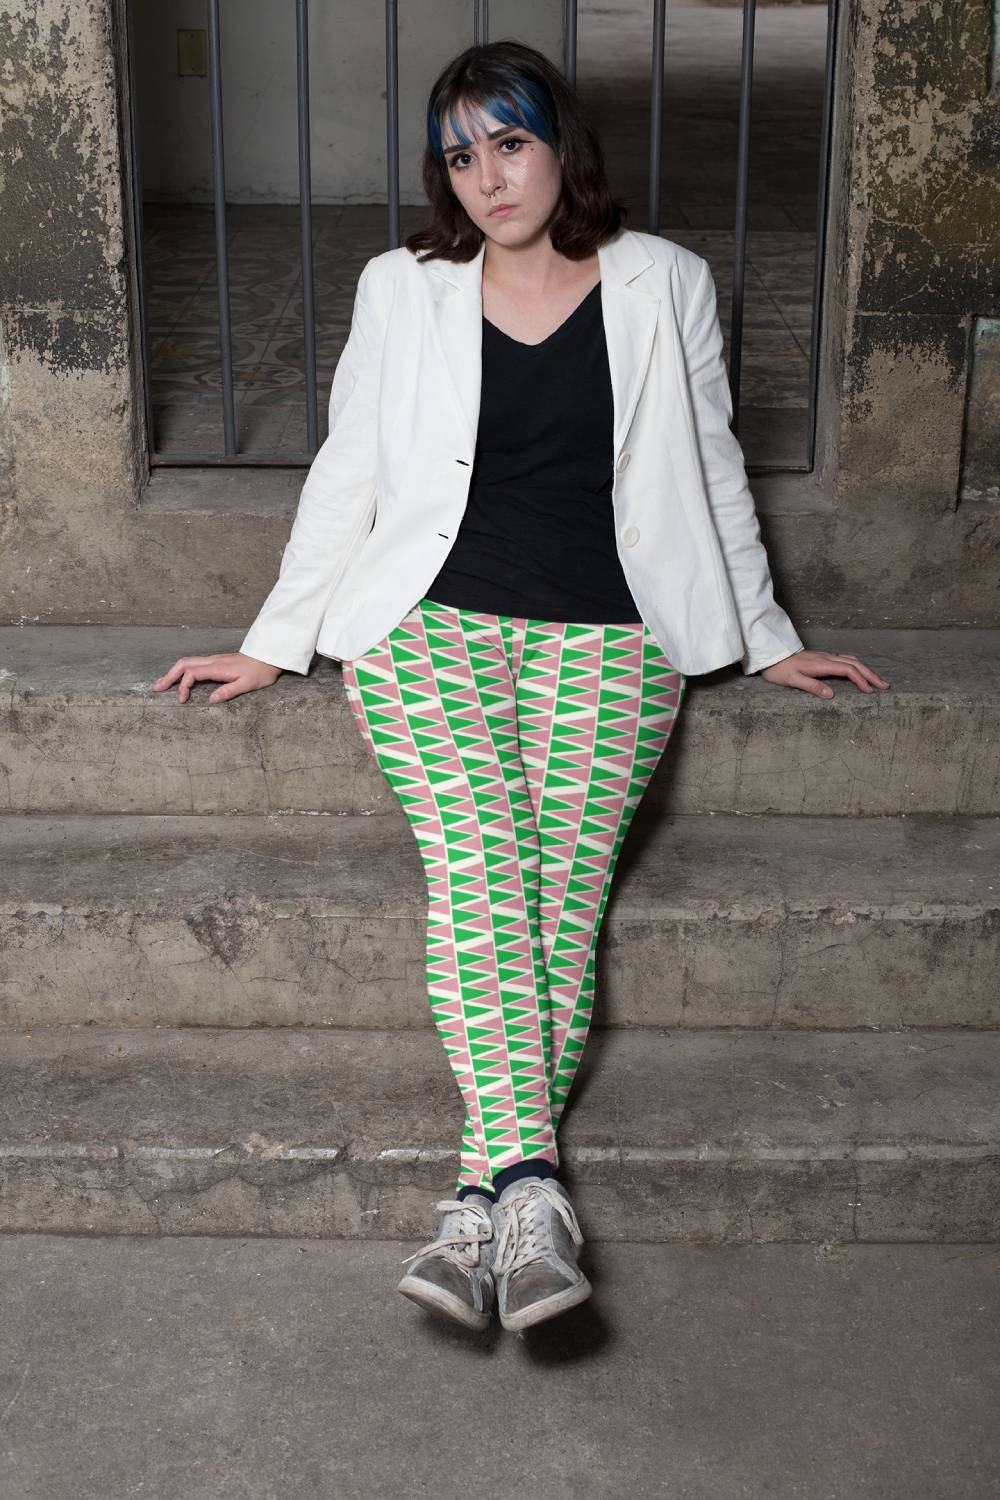 Loud patterned leggings with a tailored jacket